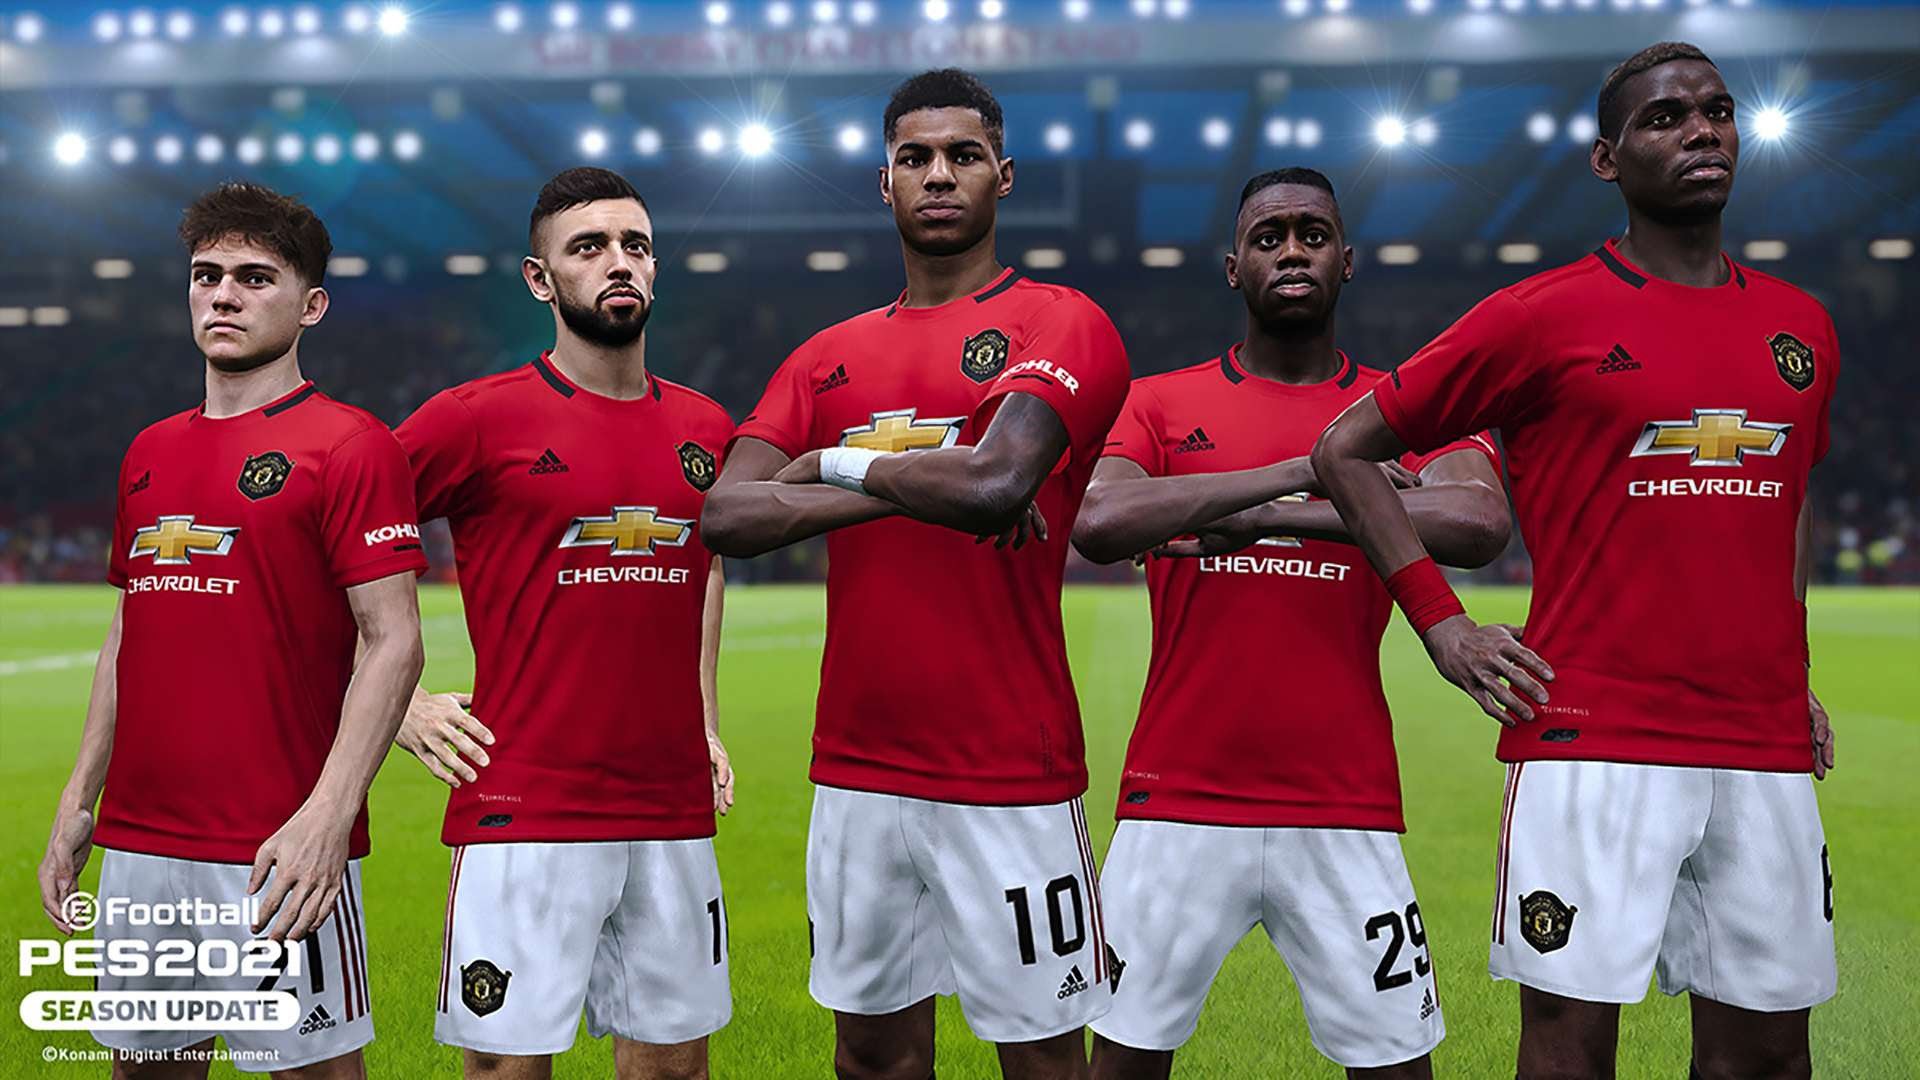 PES 2021 Manchester United